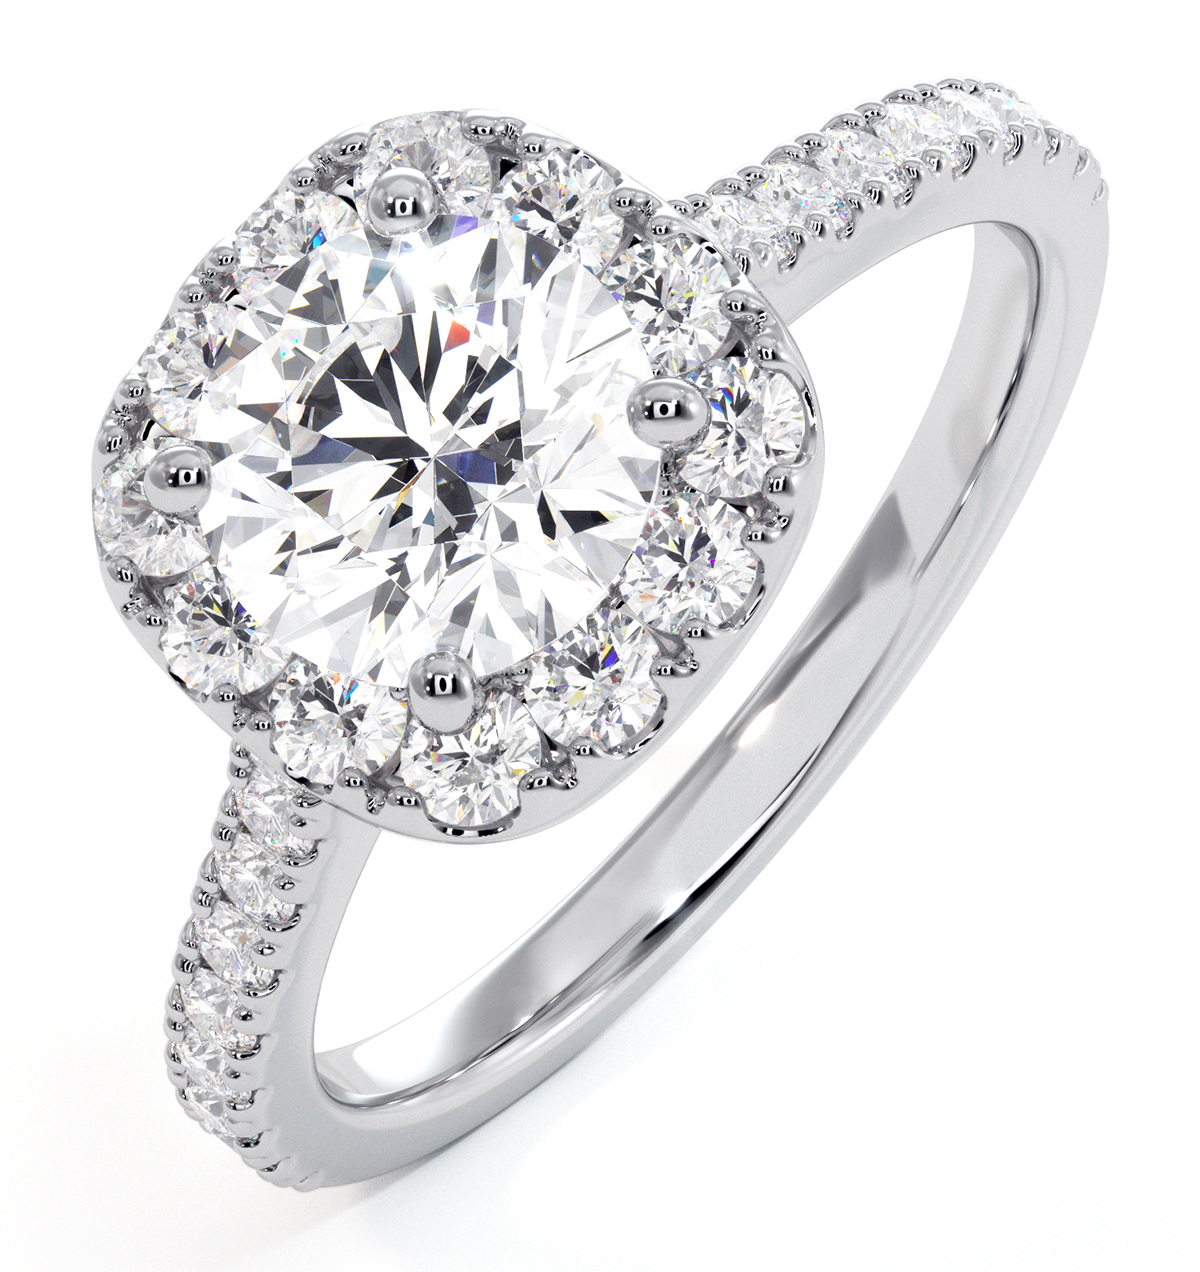 Elizabeth Lab Diamond Halo Engagement Ring in Platinum 2.50ct G/SI1 - image 1